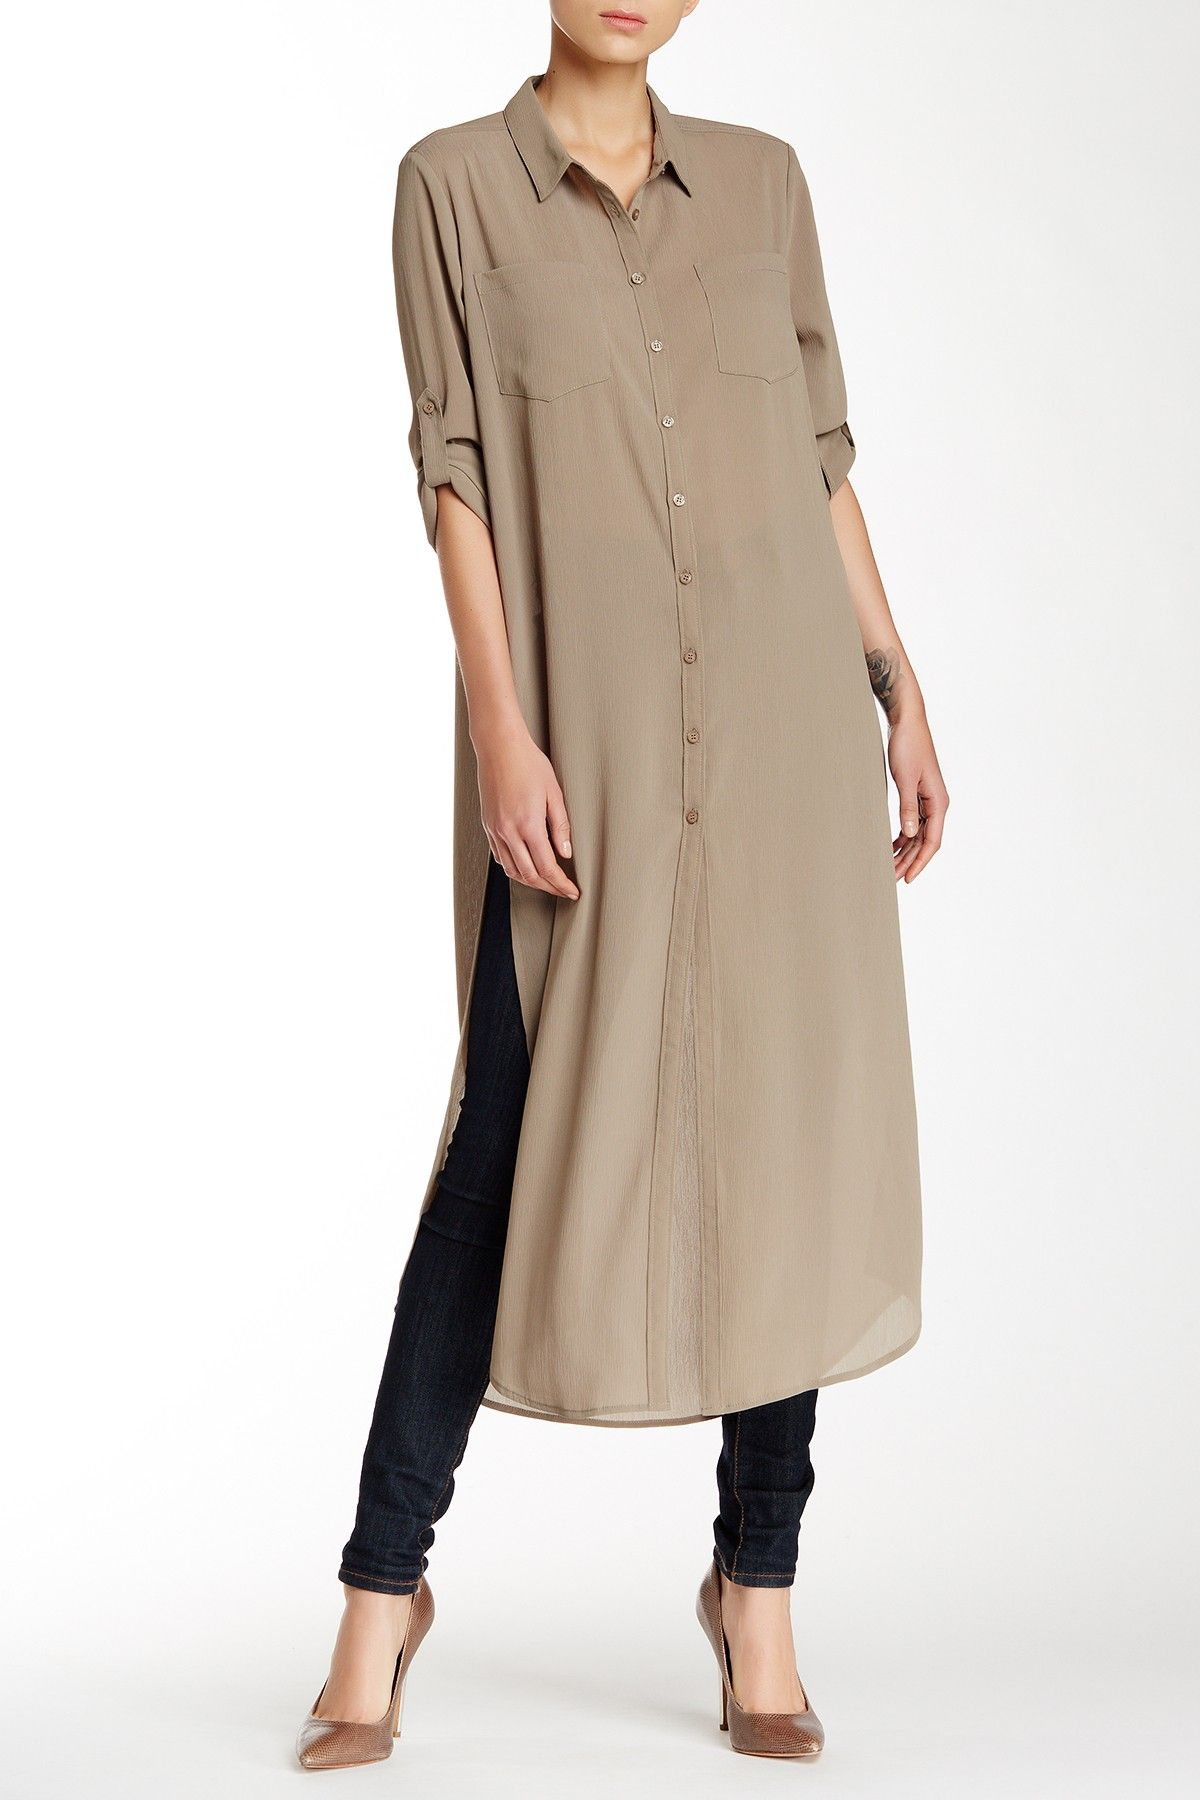 6216756c644 Cecico | Long Sleeve Split Side Maxi Tunic | Things to Wear ...